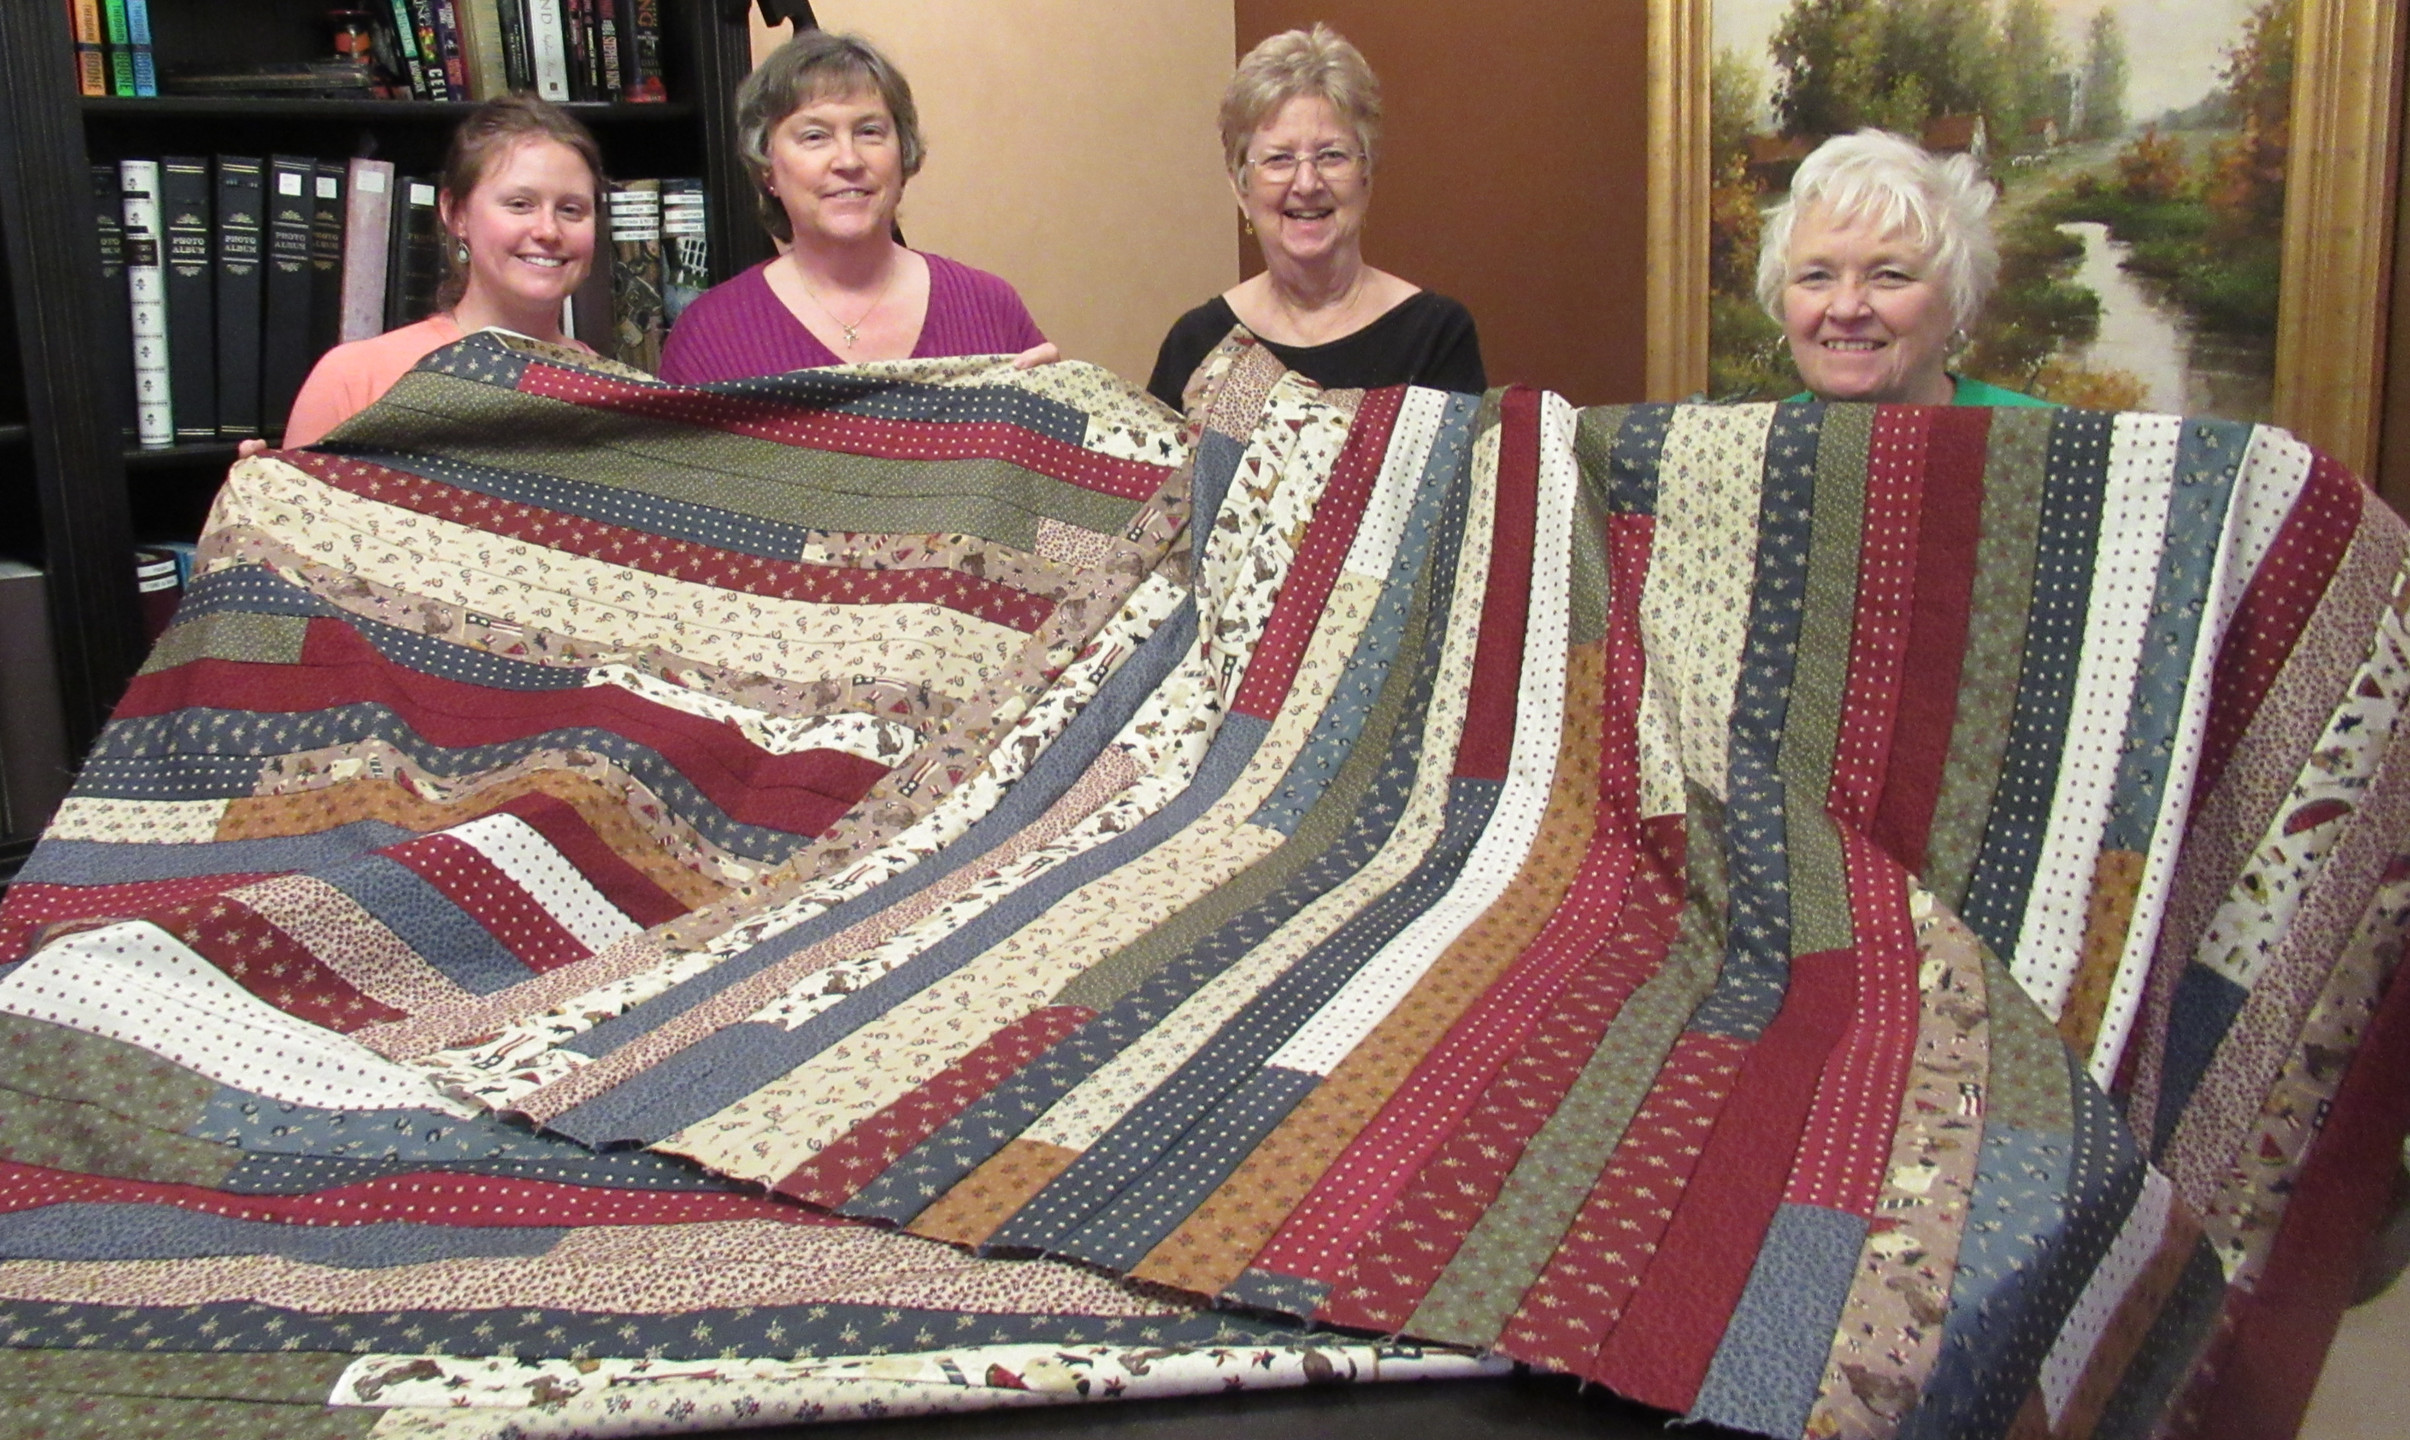 Quilts of Valor made by Jenna, Janice, Nancy & Gladys. Soon to be quilted and then donated.